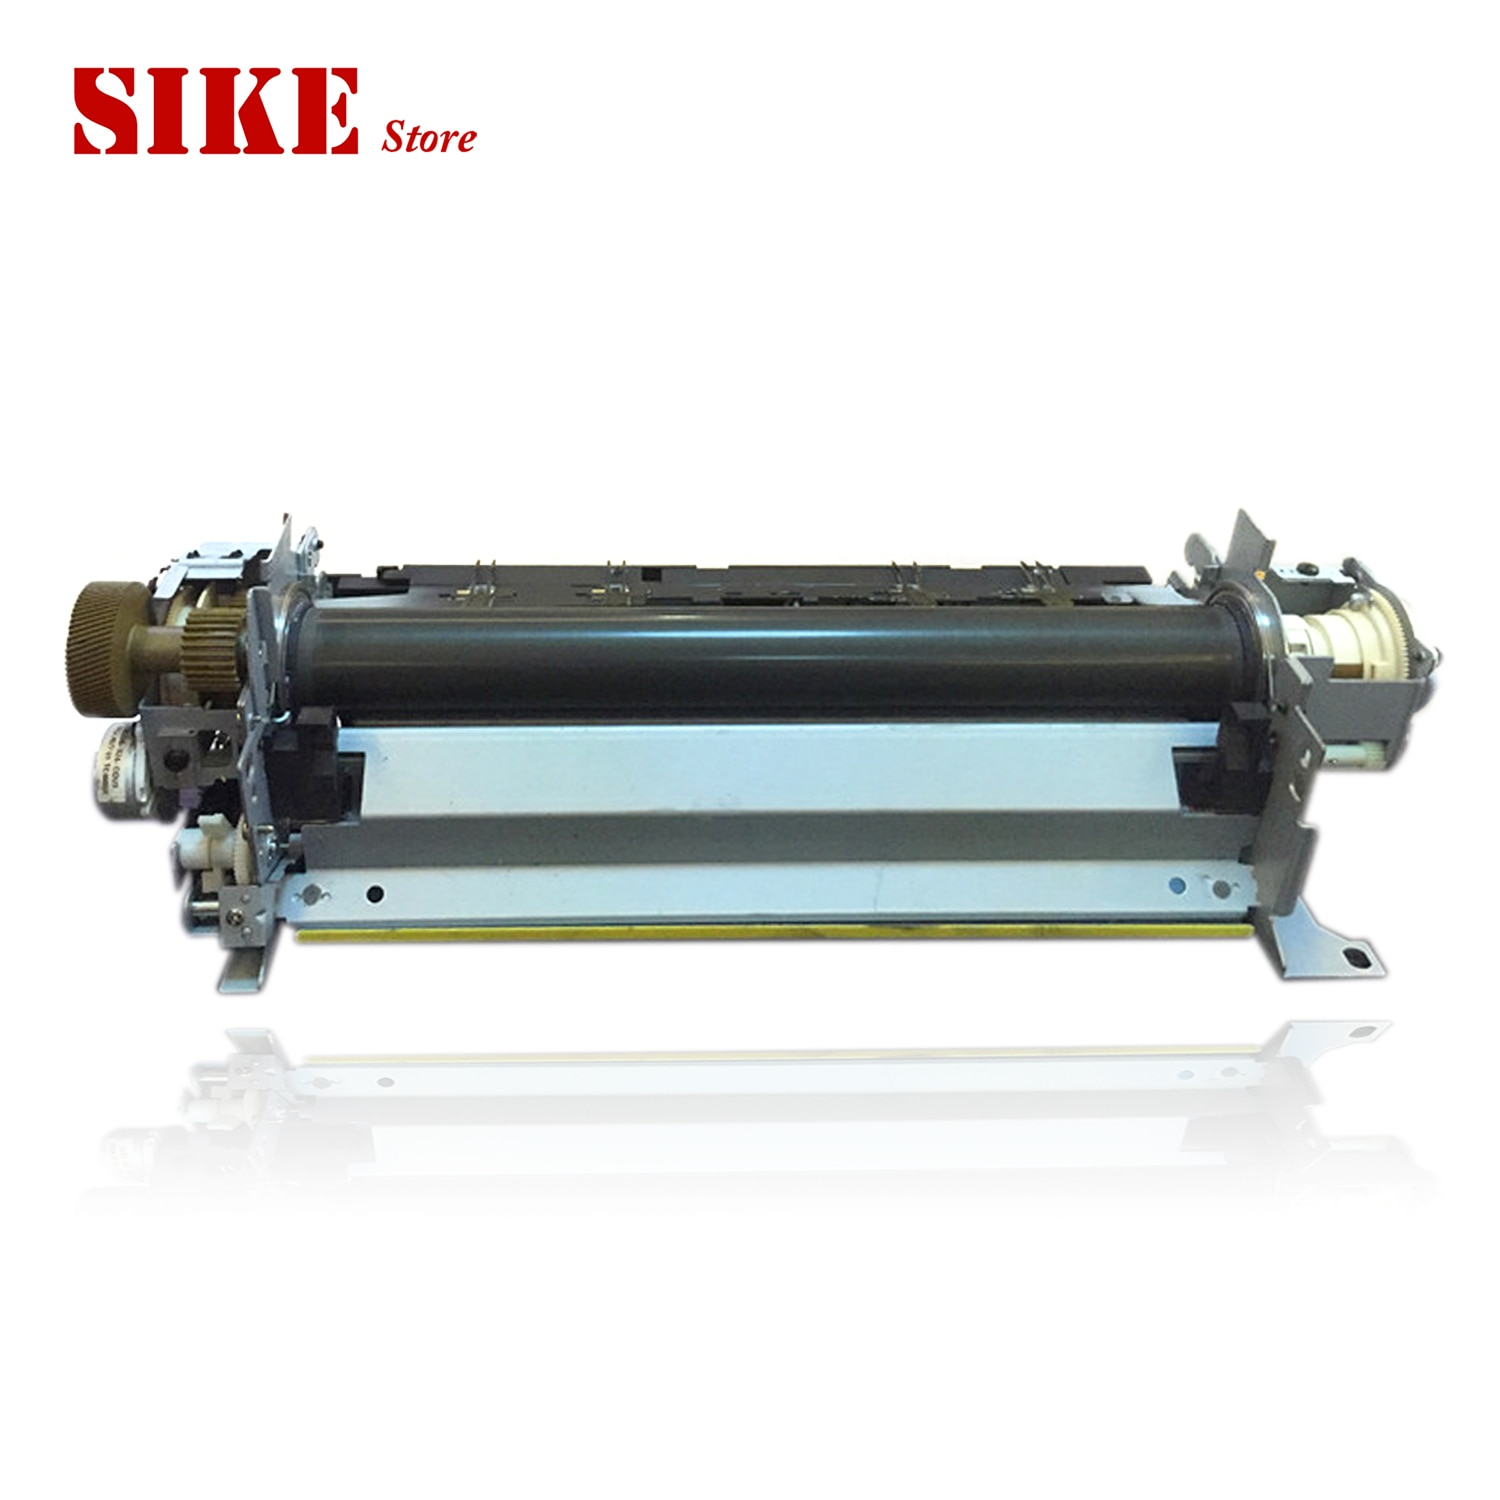 FM3-7358 Fixing Heating Assembly For Canon iR Advance 6255 6265 6275 6055 6065 6075 iR-ADV 6555 6565 6575 Fuser Assembly Unit